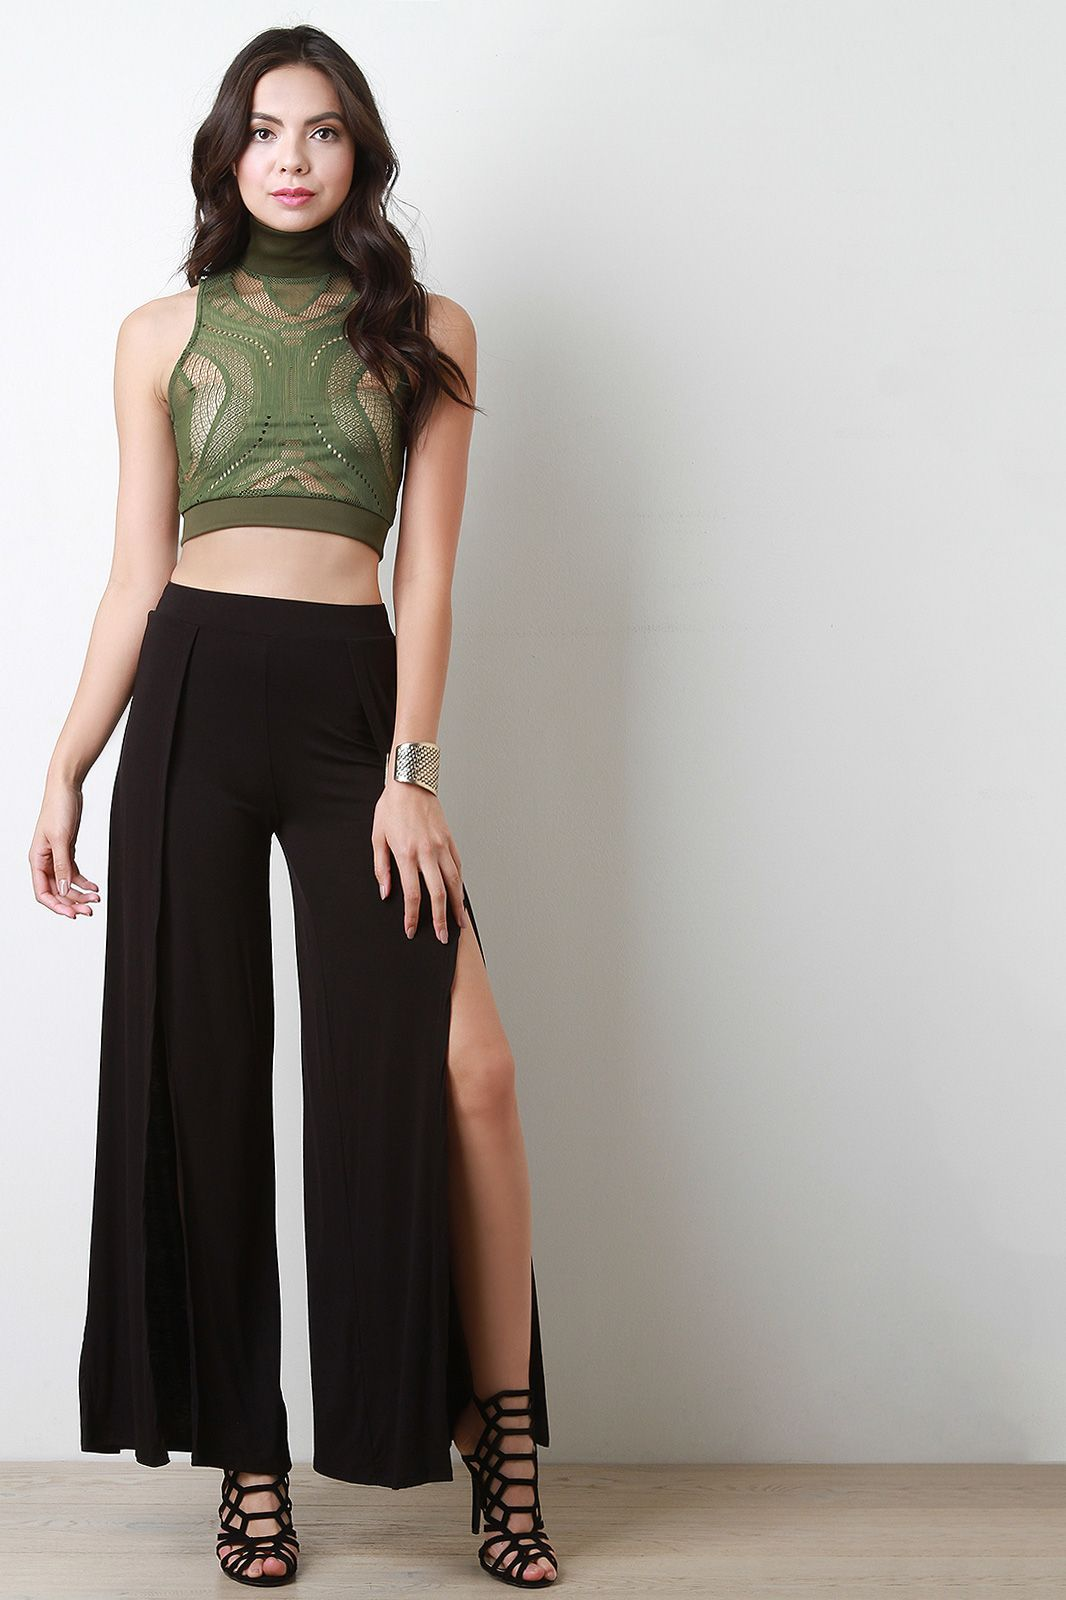 Free SH & Easy Returns! Shop High Waist Wrap Flare Palazzo Pant. These palazzo pants feature an elastic waistband, wrap leg design, slit, flare cut, and a soft knit fabrication.